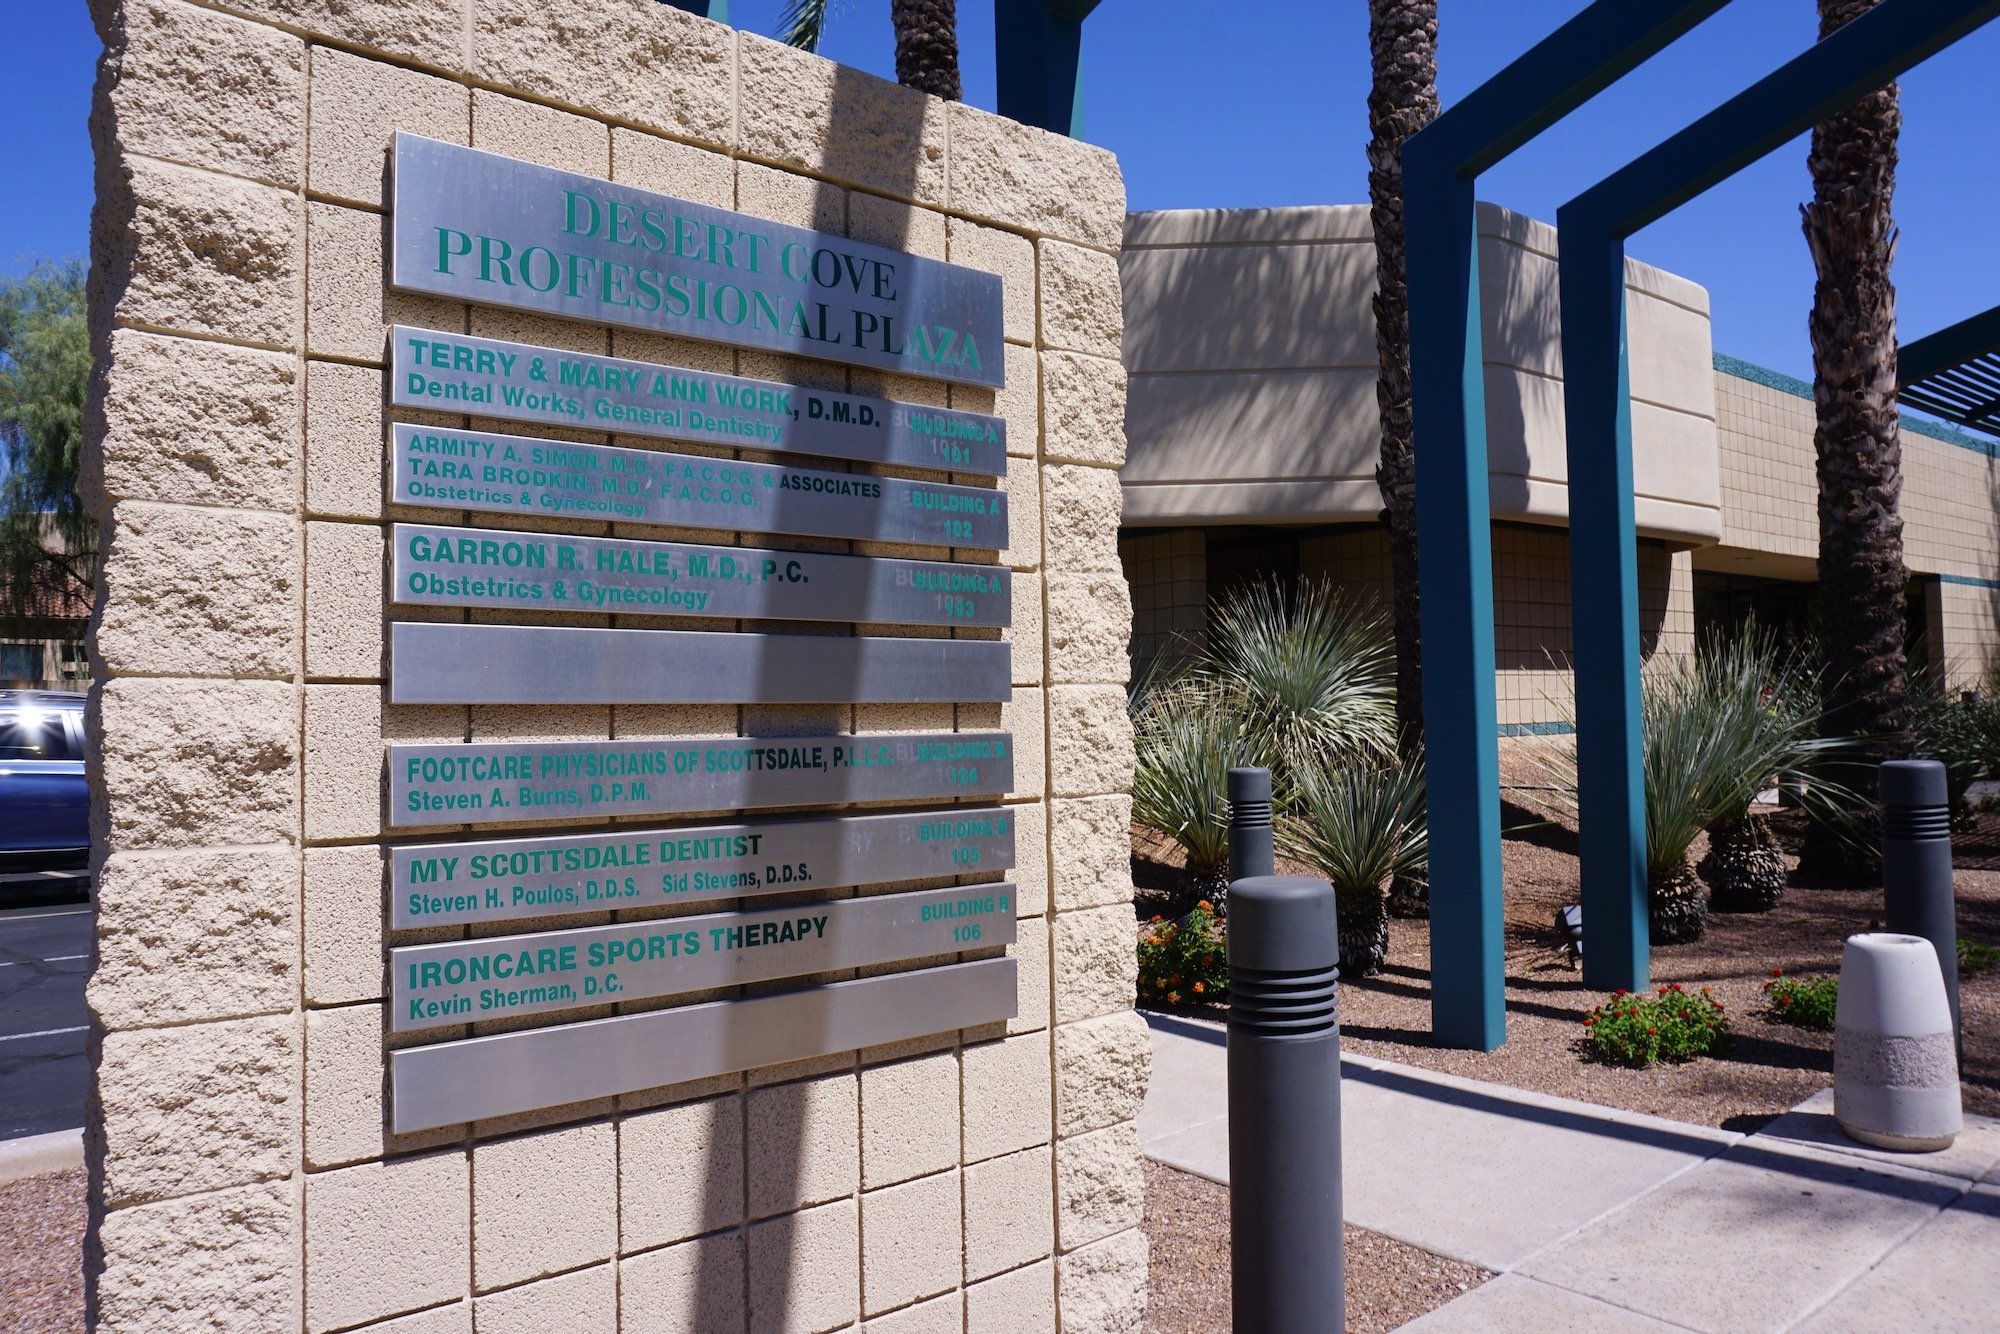 Desert Cove Professional Plaza Building Directory